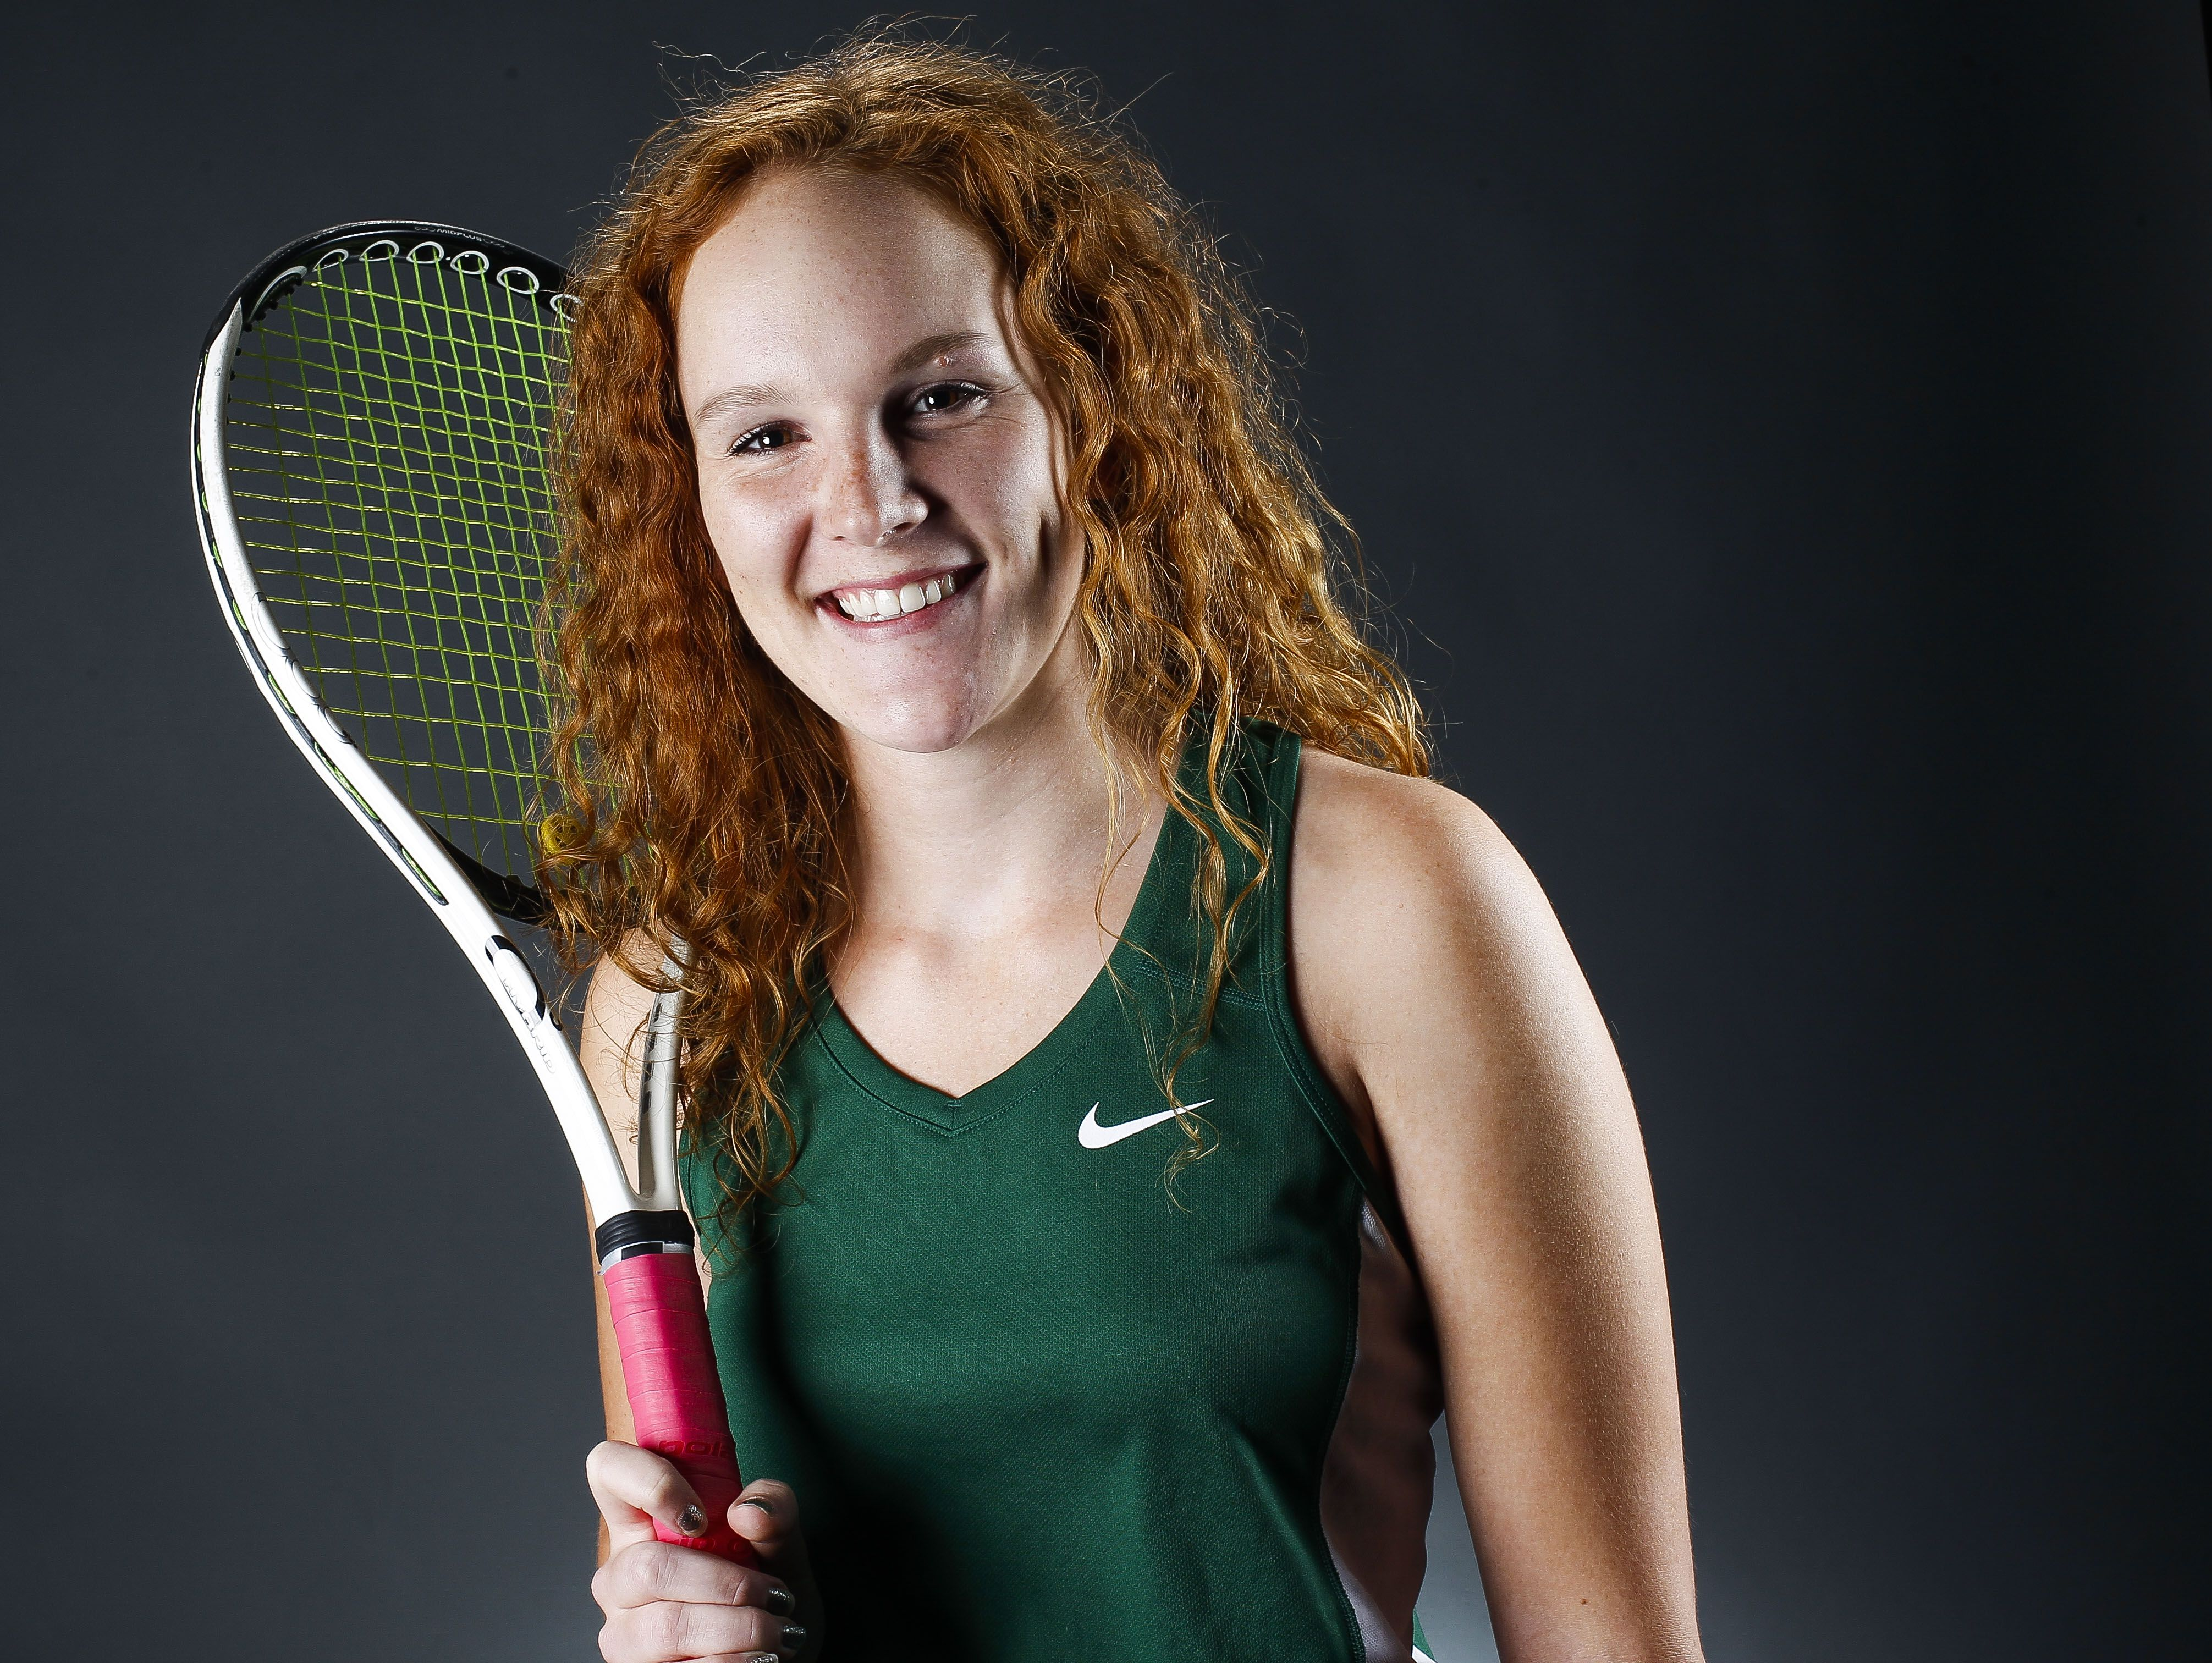 Phoenix Sunnyslope senior tennis player Libby Fleury is an Arizona Sports Awards April Athlete of the Month runner-up, presented by La-Z-Boy Furniture Galleries.